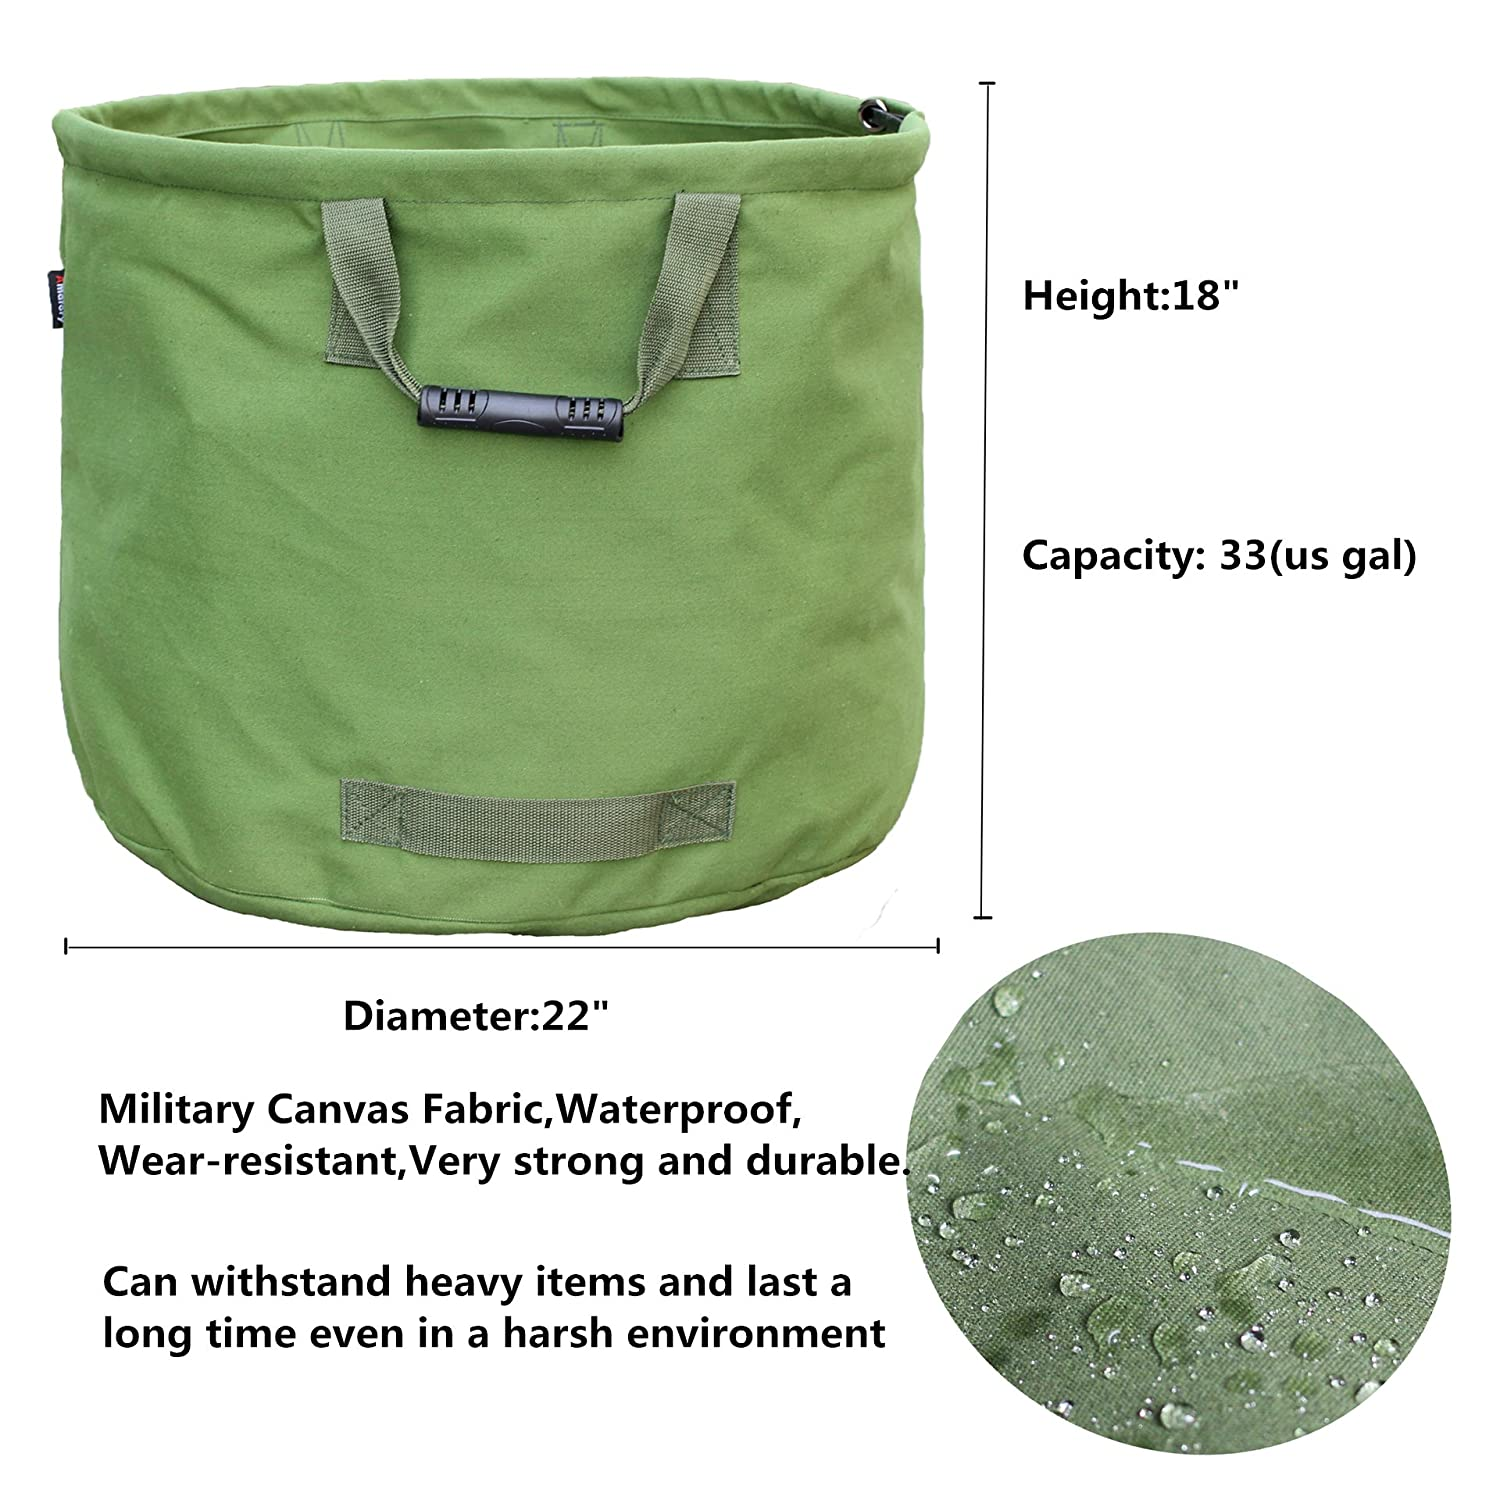 Green Amatory Garden Lawn Leaf Yard Waste Bag Container Tote Gardening Trash Reusable Heavy Duty Military Canvas Fabric 33 Gallon